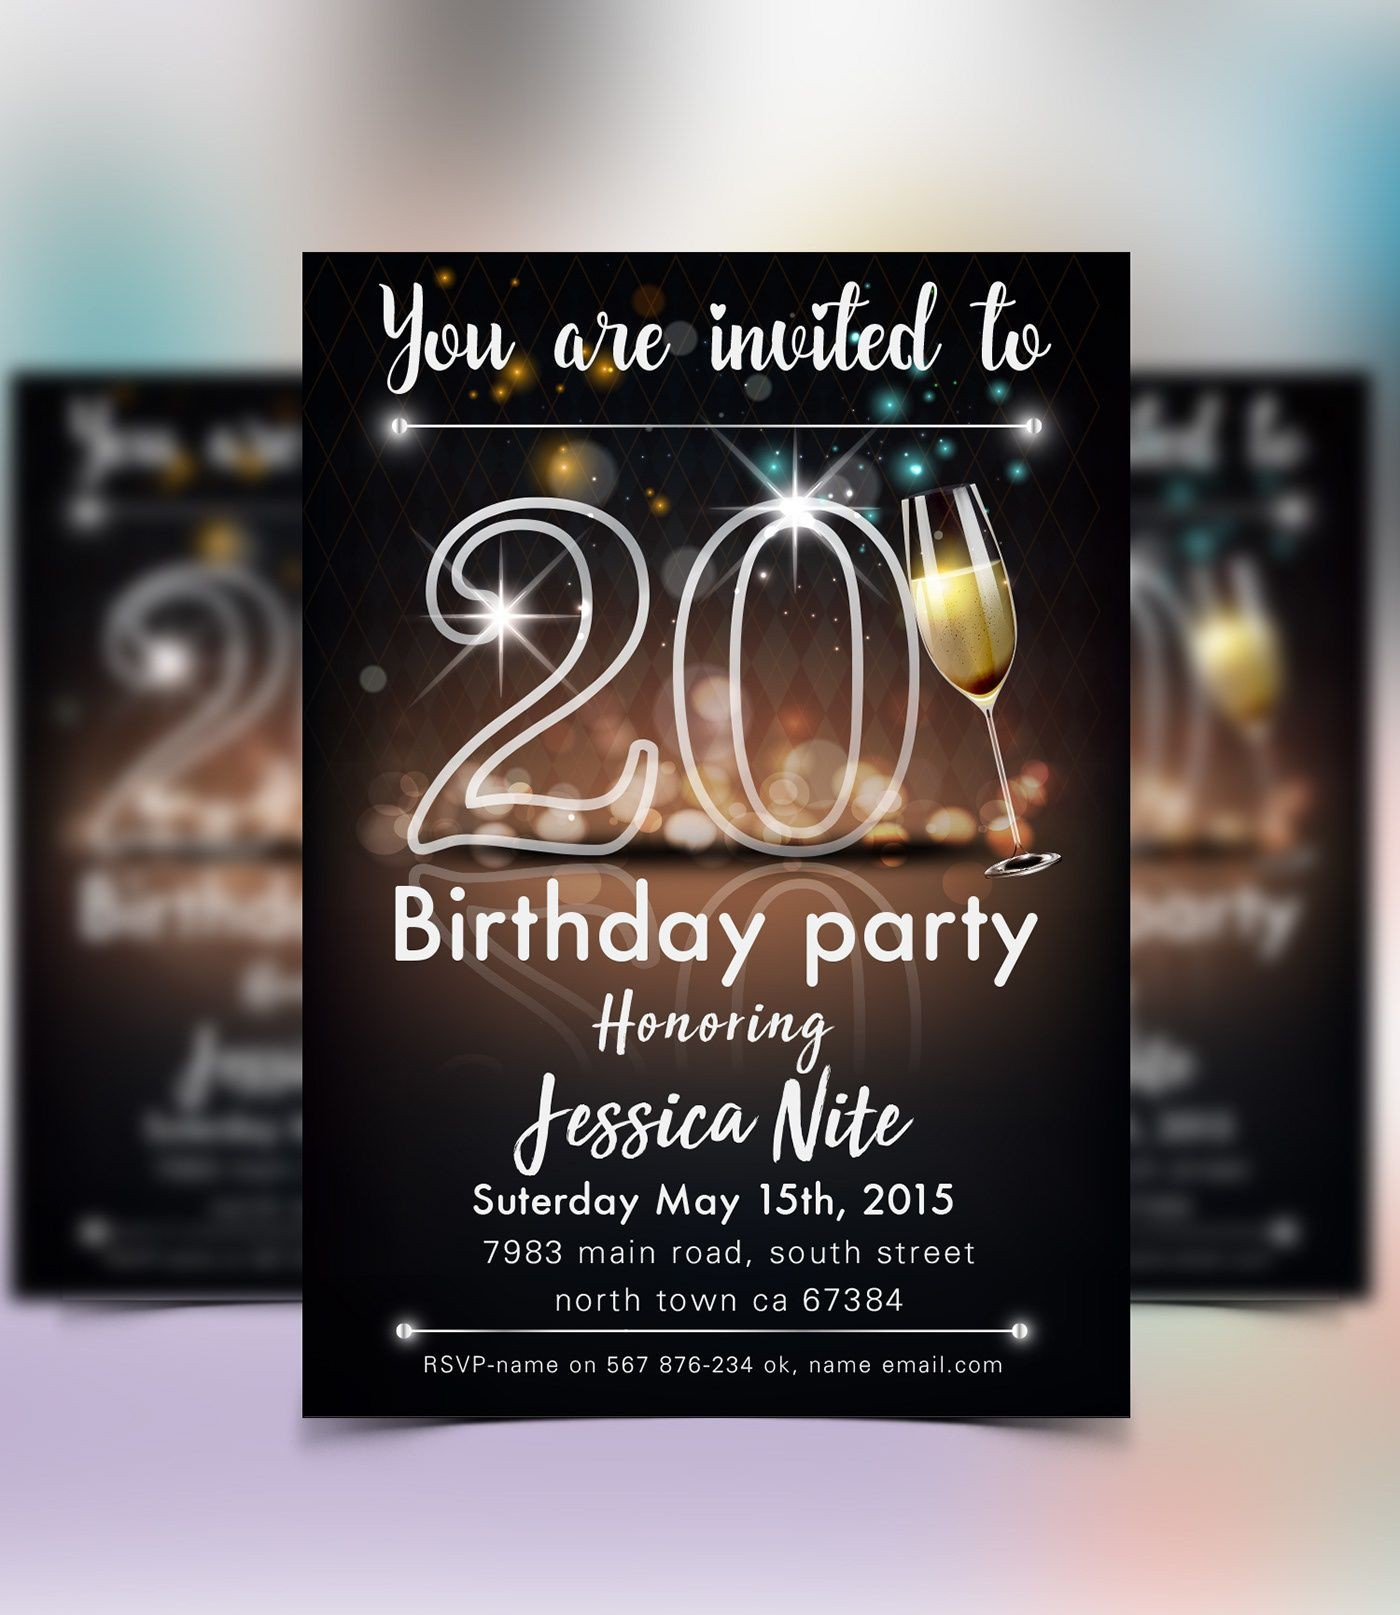 004 Phenomenal Save The Date Flyer Template Sample  Word Event1400